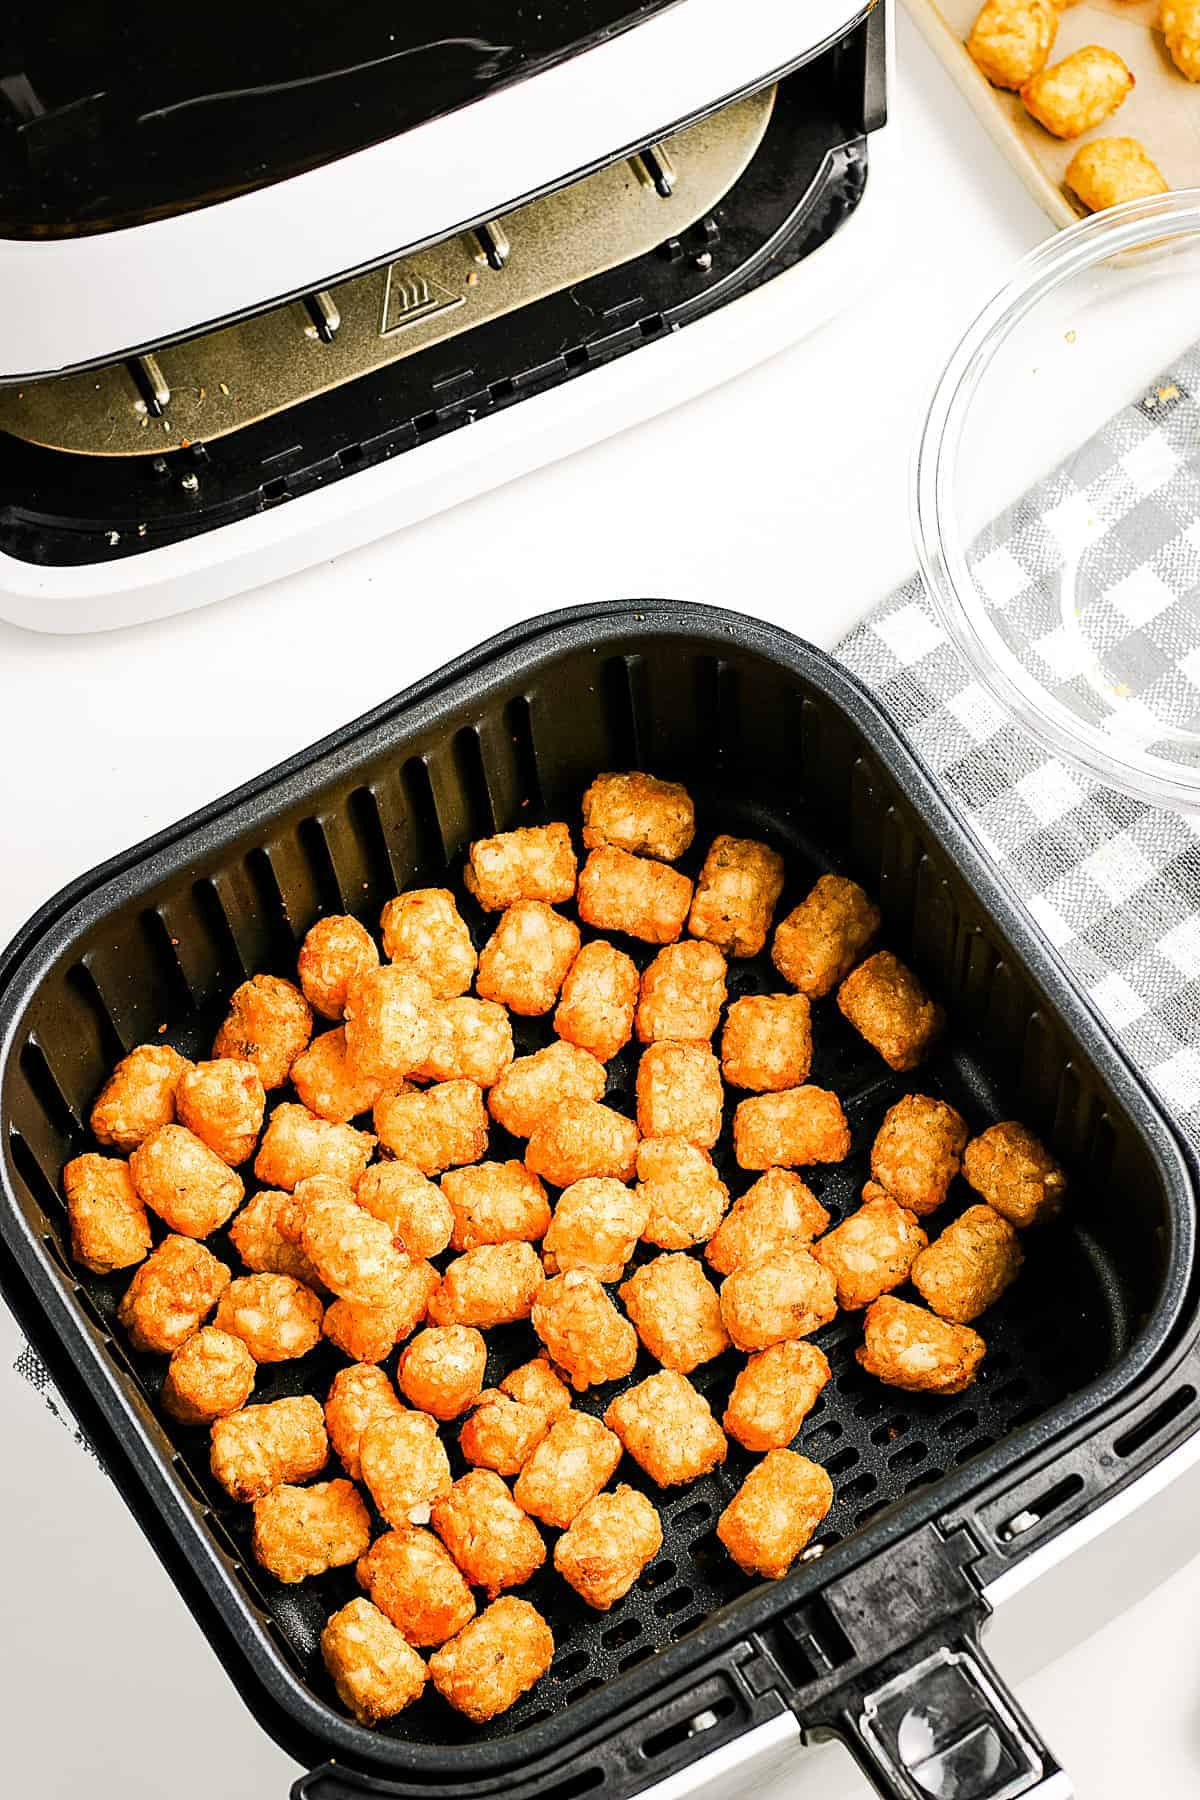 Cooked Tater Tots in air fryer basket